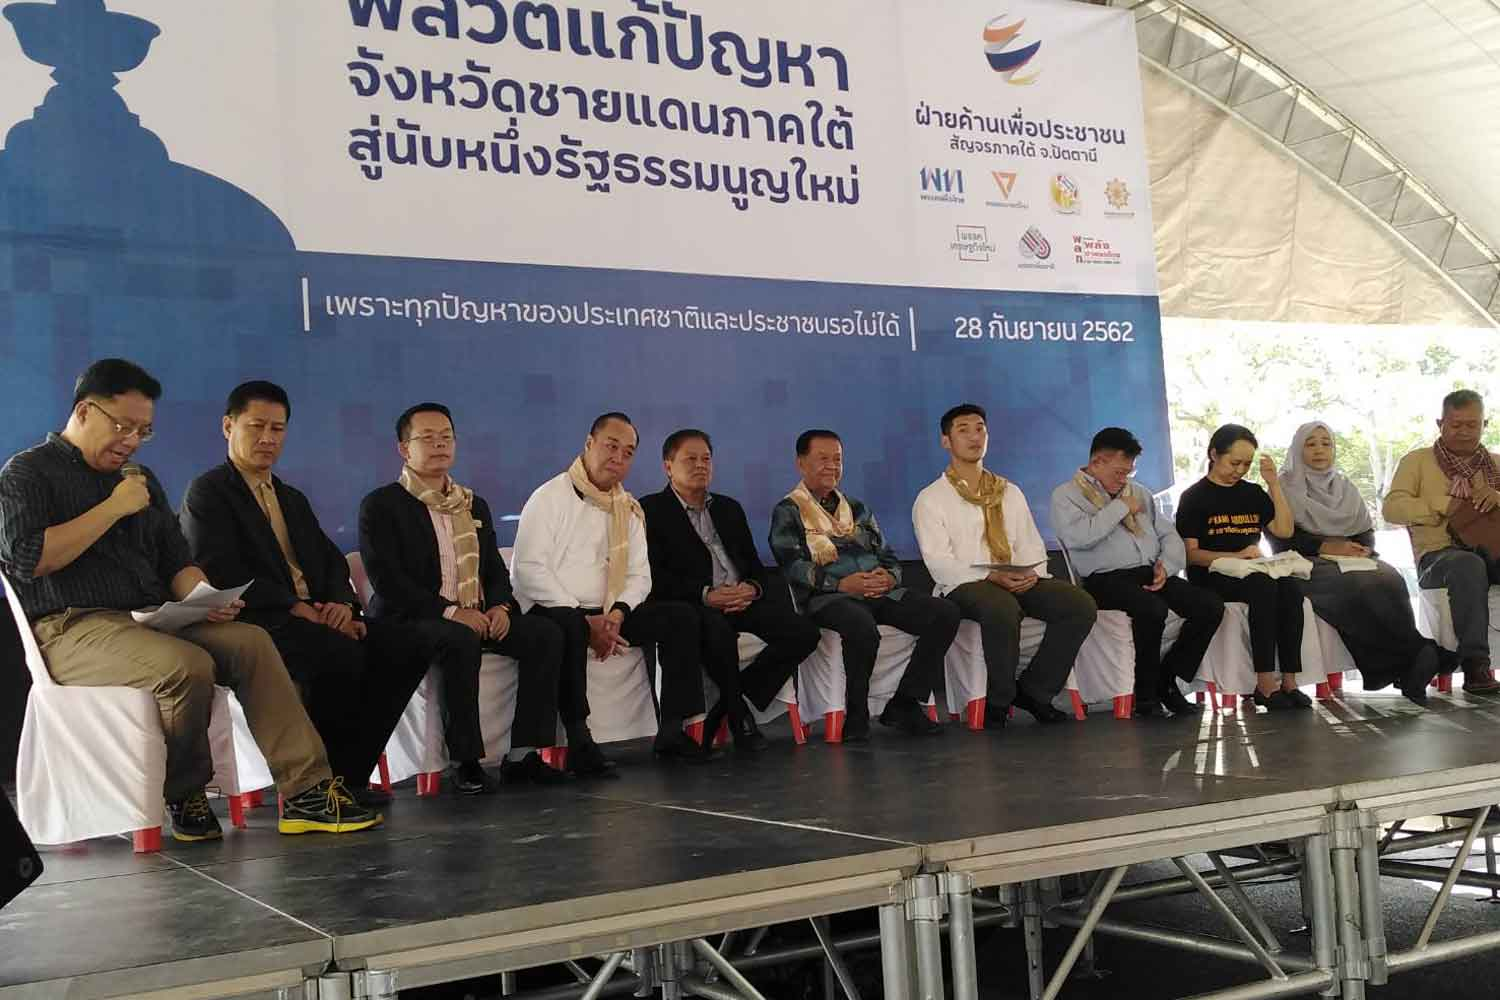 Representatives of opposition parties during their discussion on possible charter changes, in Pattani province on Sept 28. (Photo by Abdullah Benjakat)